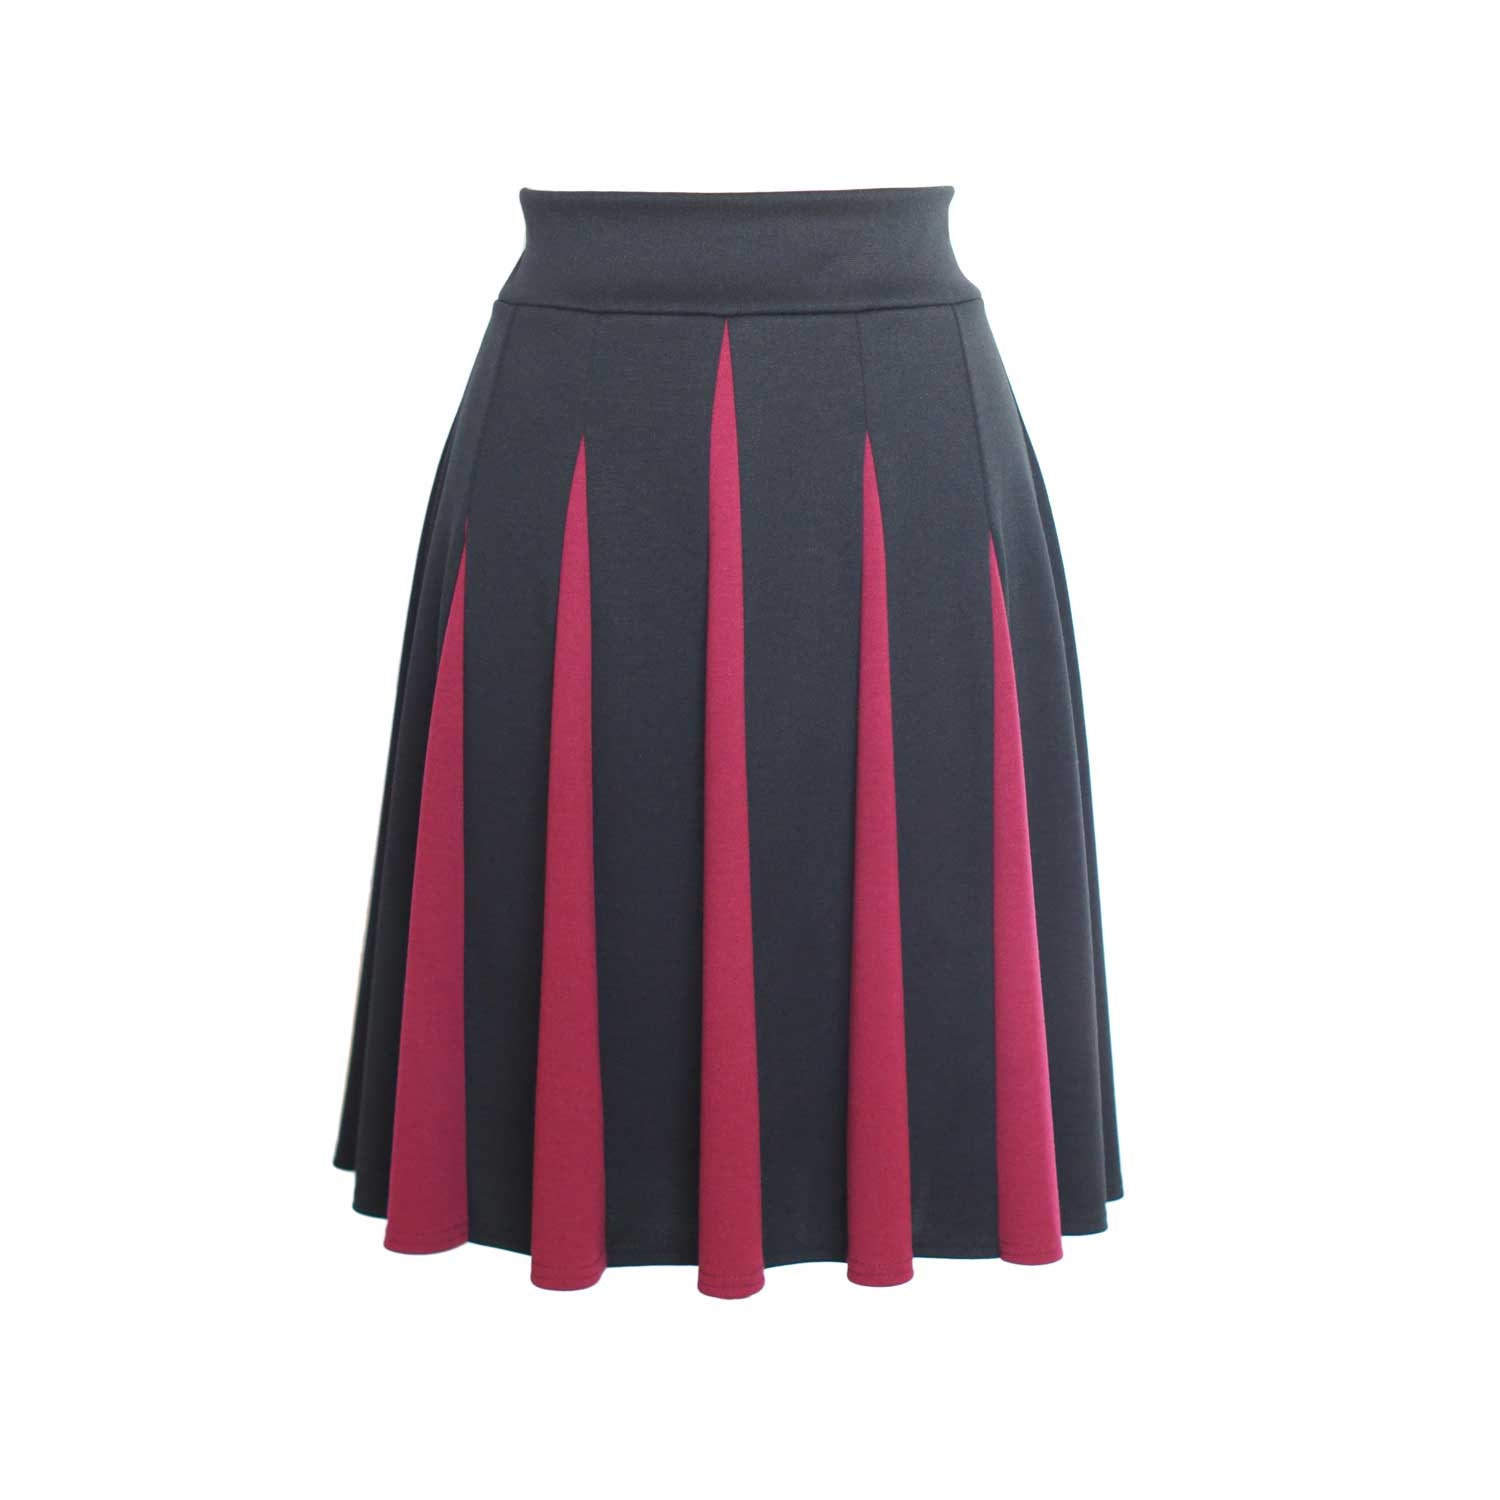 black and berry jersey skirt knee length with godets and